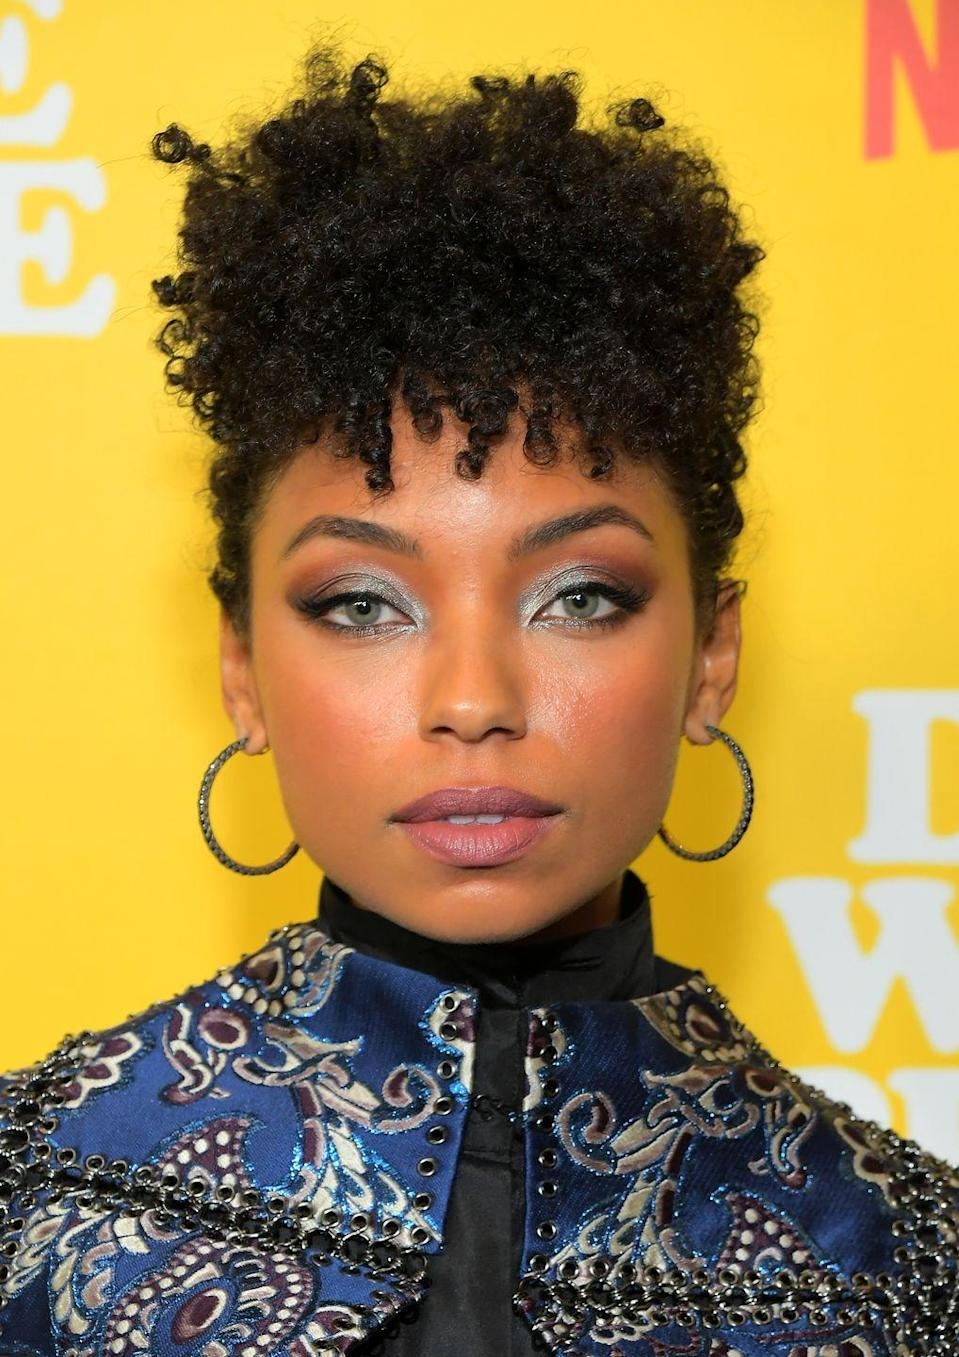 """<p>Faux-hawks are the best way to test out a haircut without committing to the scissors. And <strong>Logan Browning's</strong> version is all about an abundance of curls around the crown of the head. To secure this look, try using mini butterfly clips or bobby pins, depending on the length and weight of your hair.</p><p><strong>RELATED:</strong> <a href=""""https://www.goodhousekeeping.com/beauty/hair/g30681266/cute-hair-clips-barrettes/"""" rel=""""nofollow noopener"""" target=""""_blank"""" data-ylk=""""slk:24 Cute Hair Clips That Are Perfect for Your Next Zoom Call"""" class=""""link rapid-noclick-resp"""">24 Cute Hair Clips That Are Perfect for Your Next Zoom Call</a></p>"""